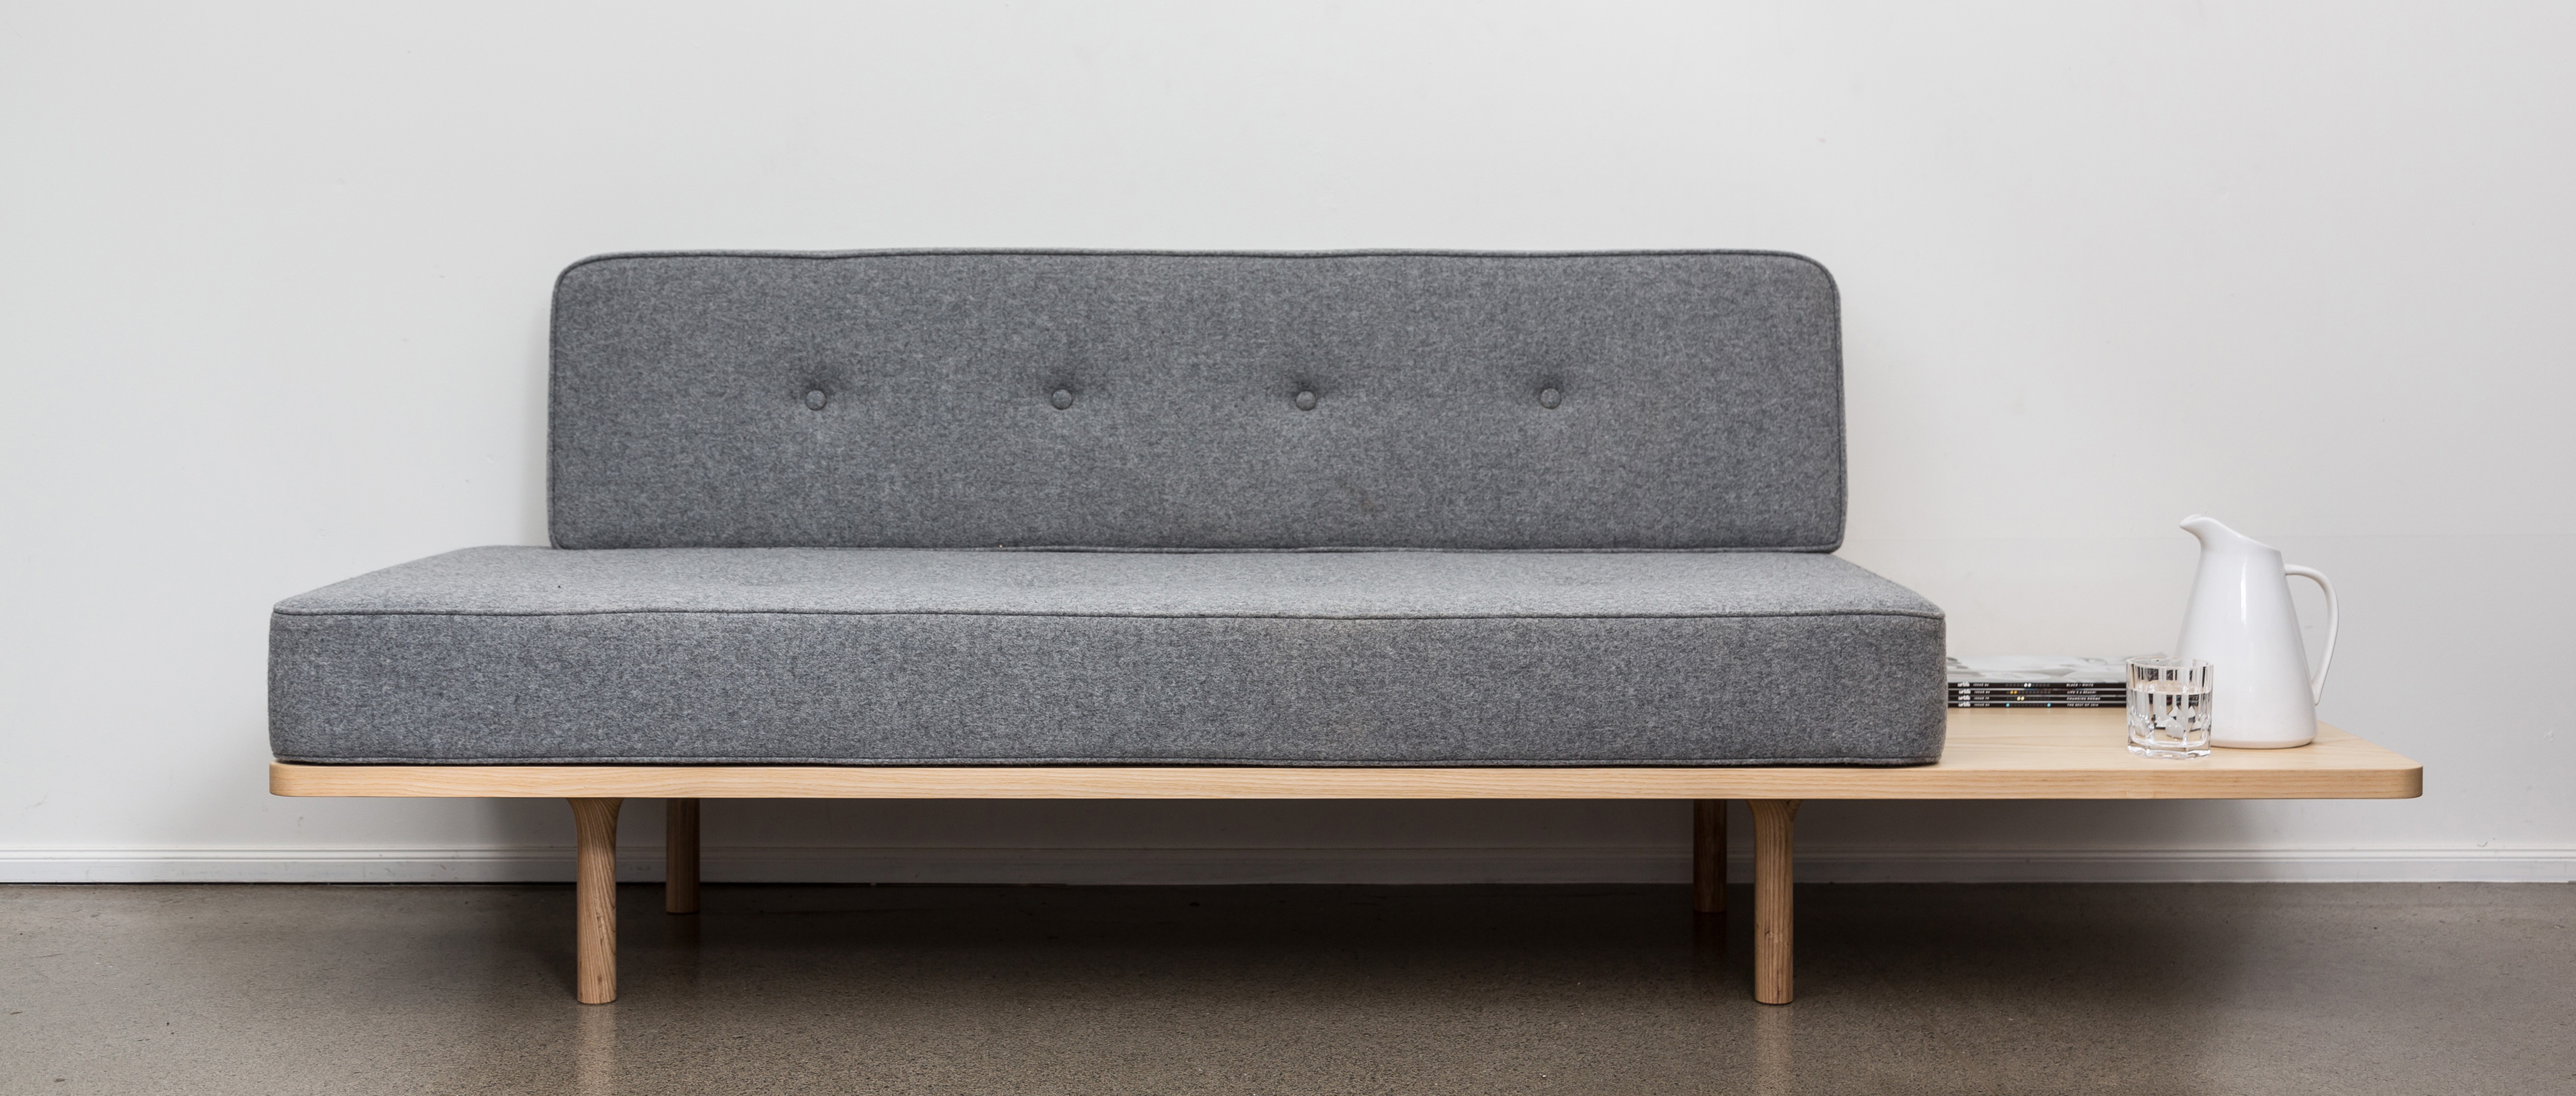 Stylish and comfortable, the Welcome couch comes with an optional extended base. Photo: © The Earnest Workshop